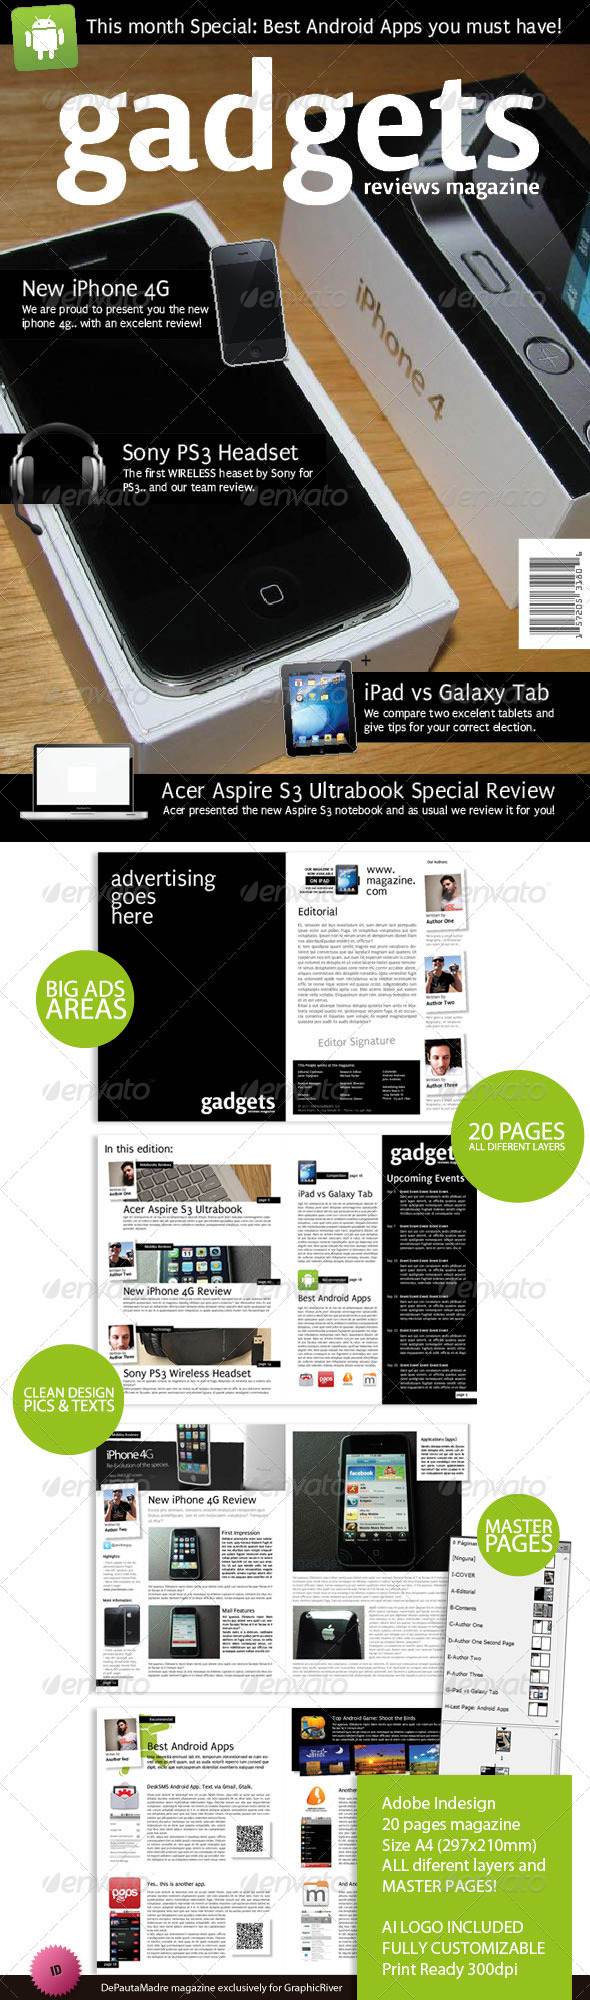 adobe indesign magazine template download free - gadgets magazine indesign template graphicriver